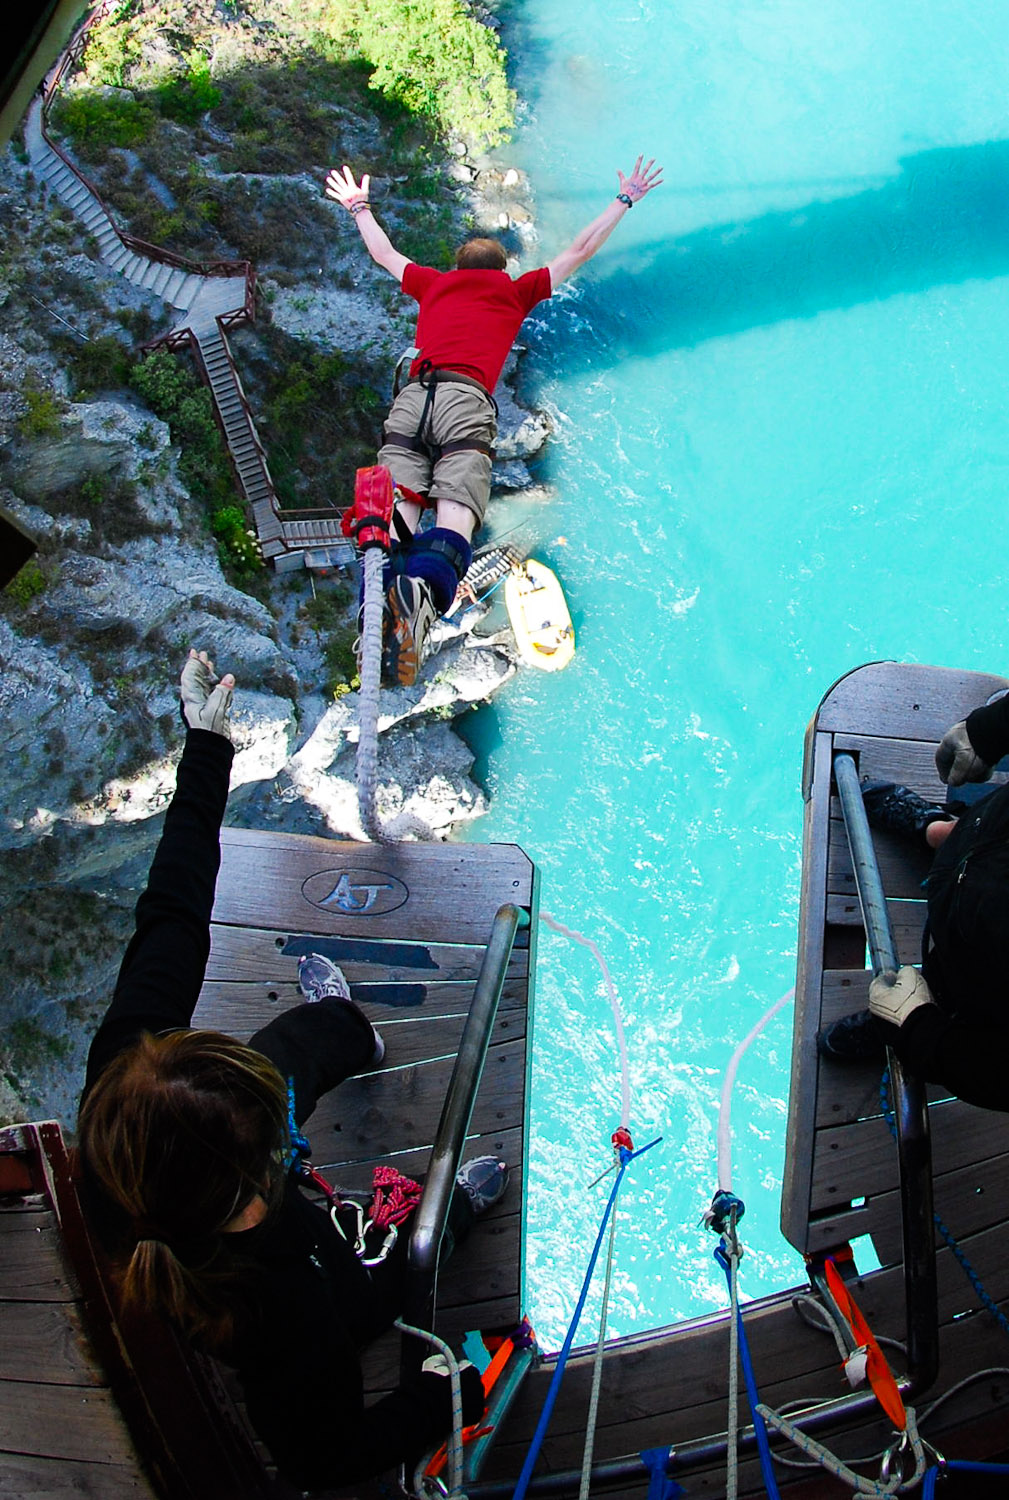 My first bungee jump - Kawarau Bridge, New Zealand - New Years Day 2010